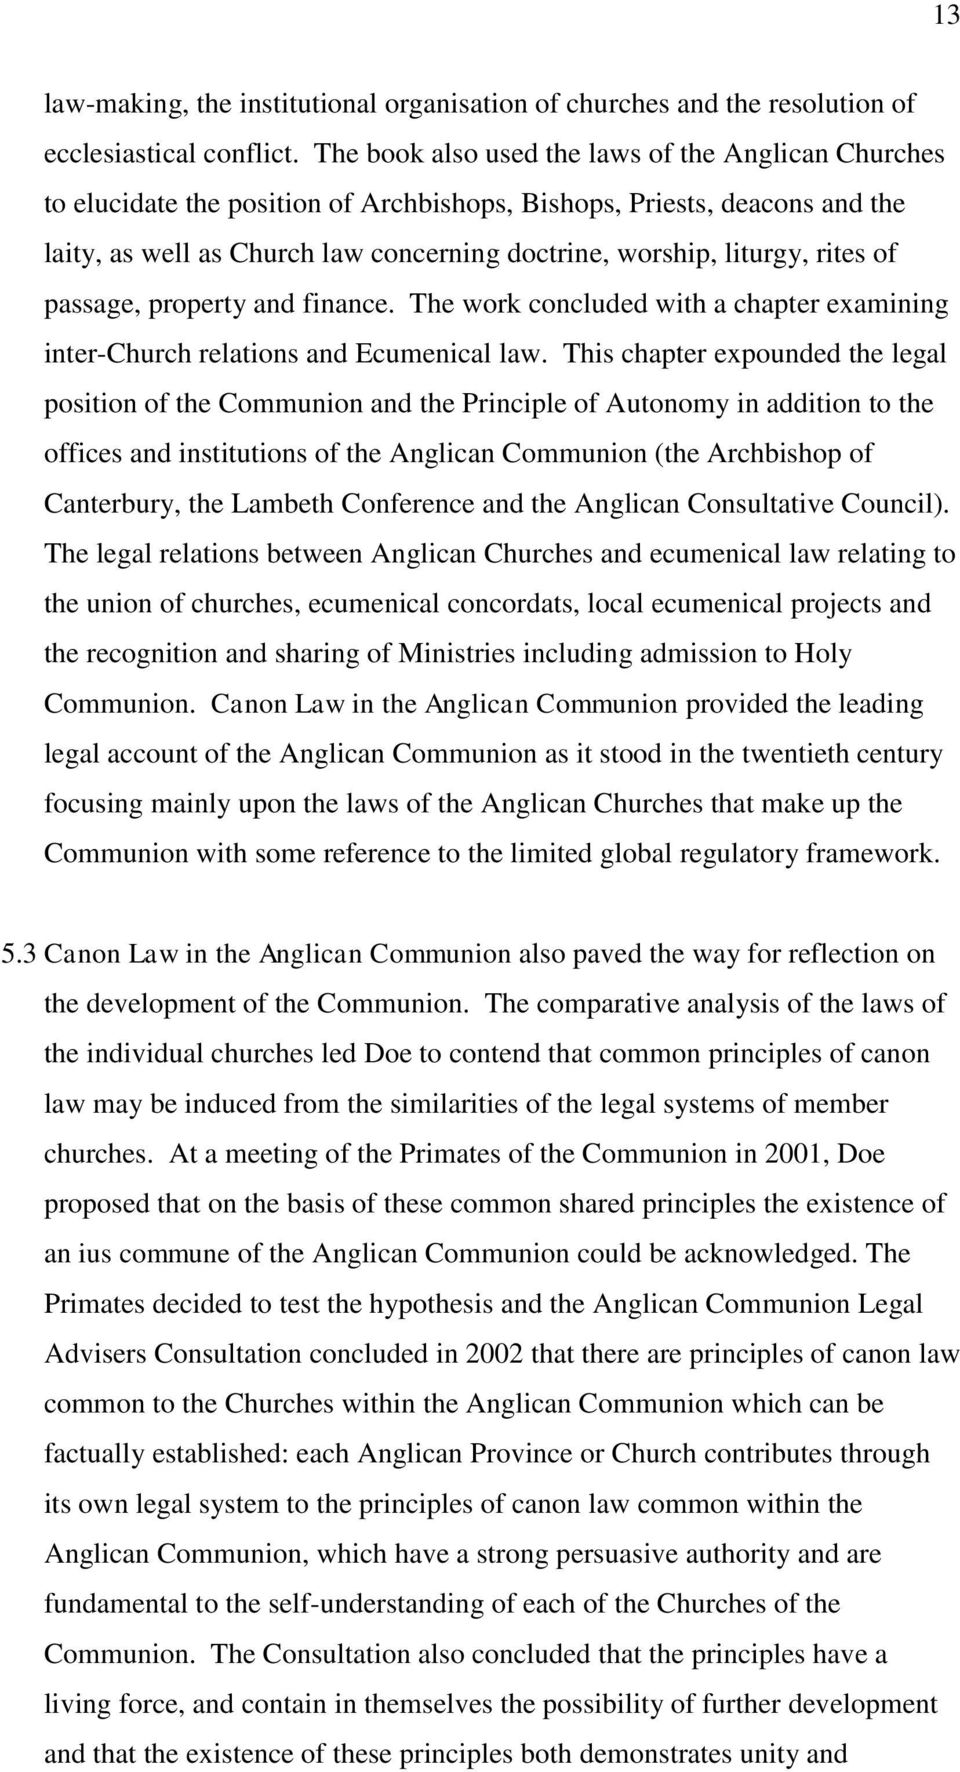 rites of passage, property and finance. The work concluded with a chapter examining inter-church relations and Ecumenical law.